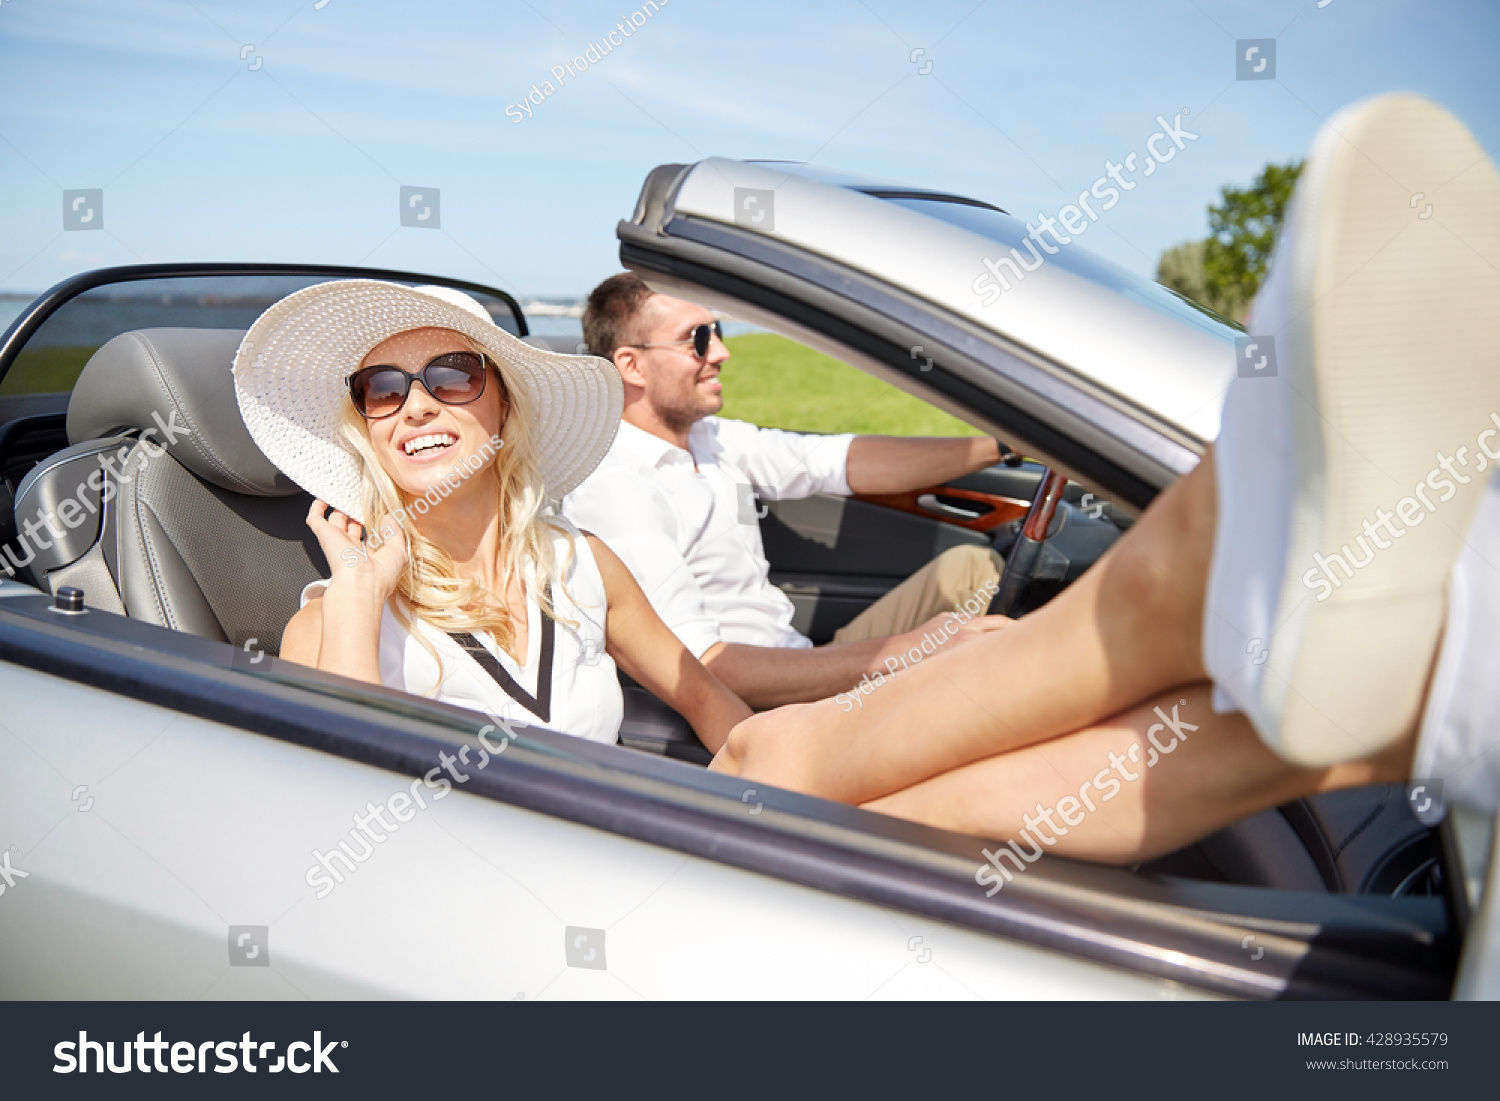 dating man with no car Are you dating a boy or a man would you date a guy with no job, no car, who's on parolebut he could be your soul mate - duration: 9:25.